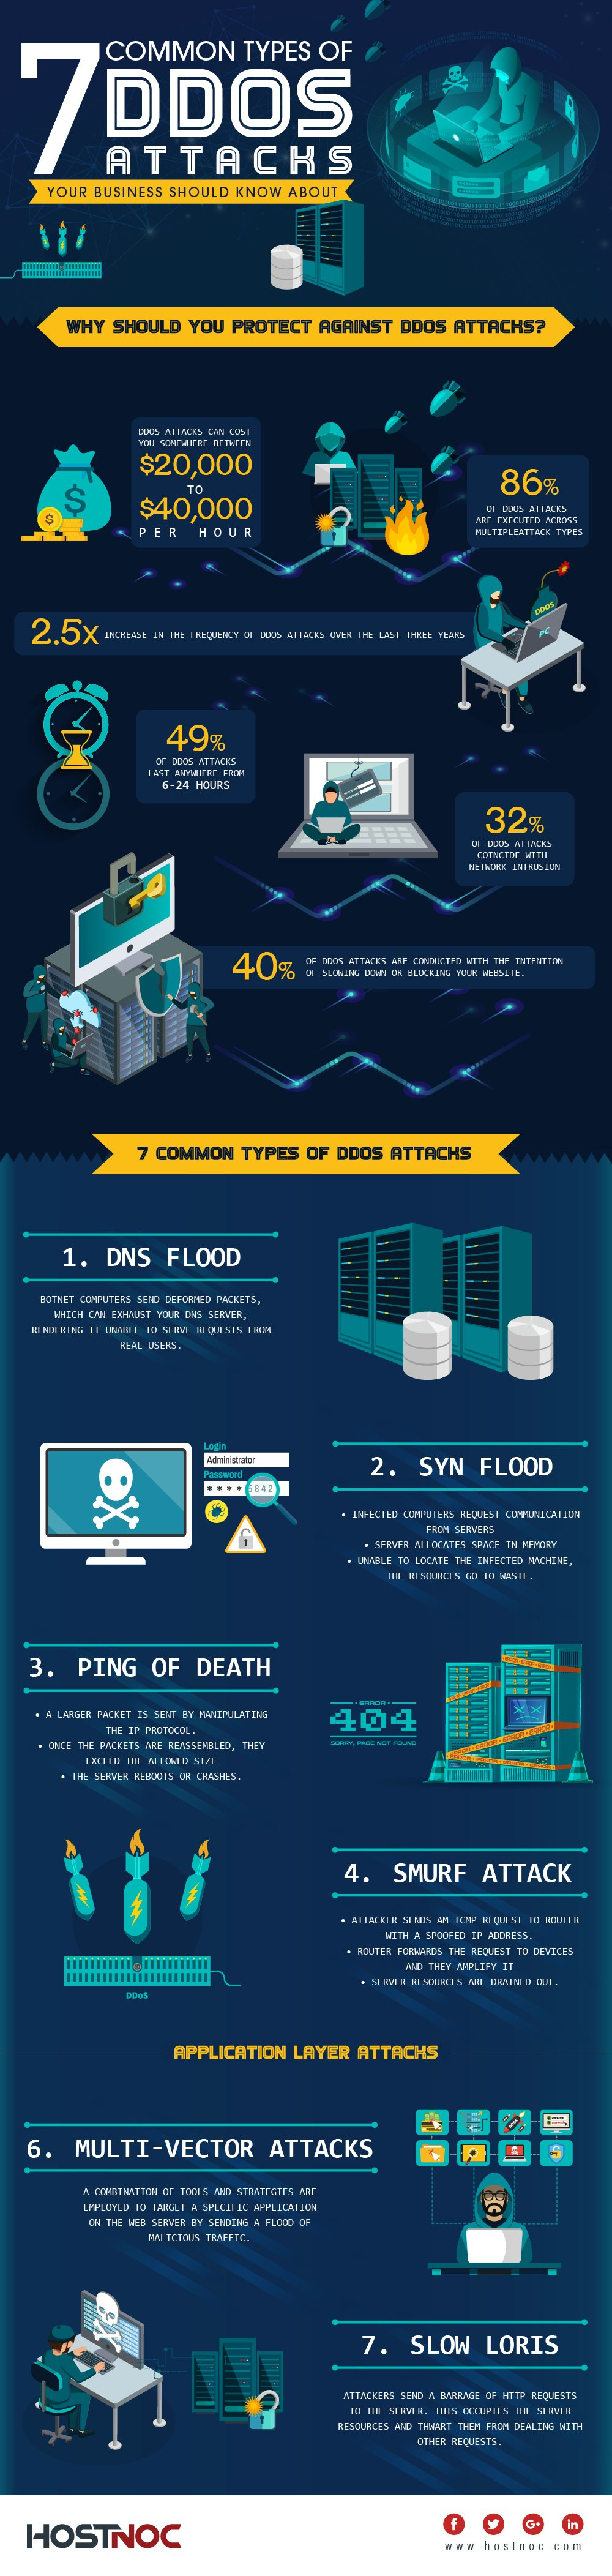 7 Common Types of DDoS Attacks Your Business Should Know About-01